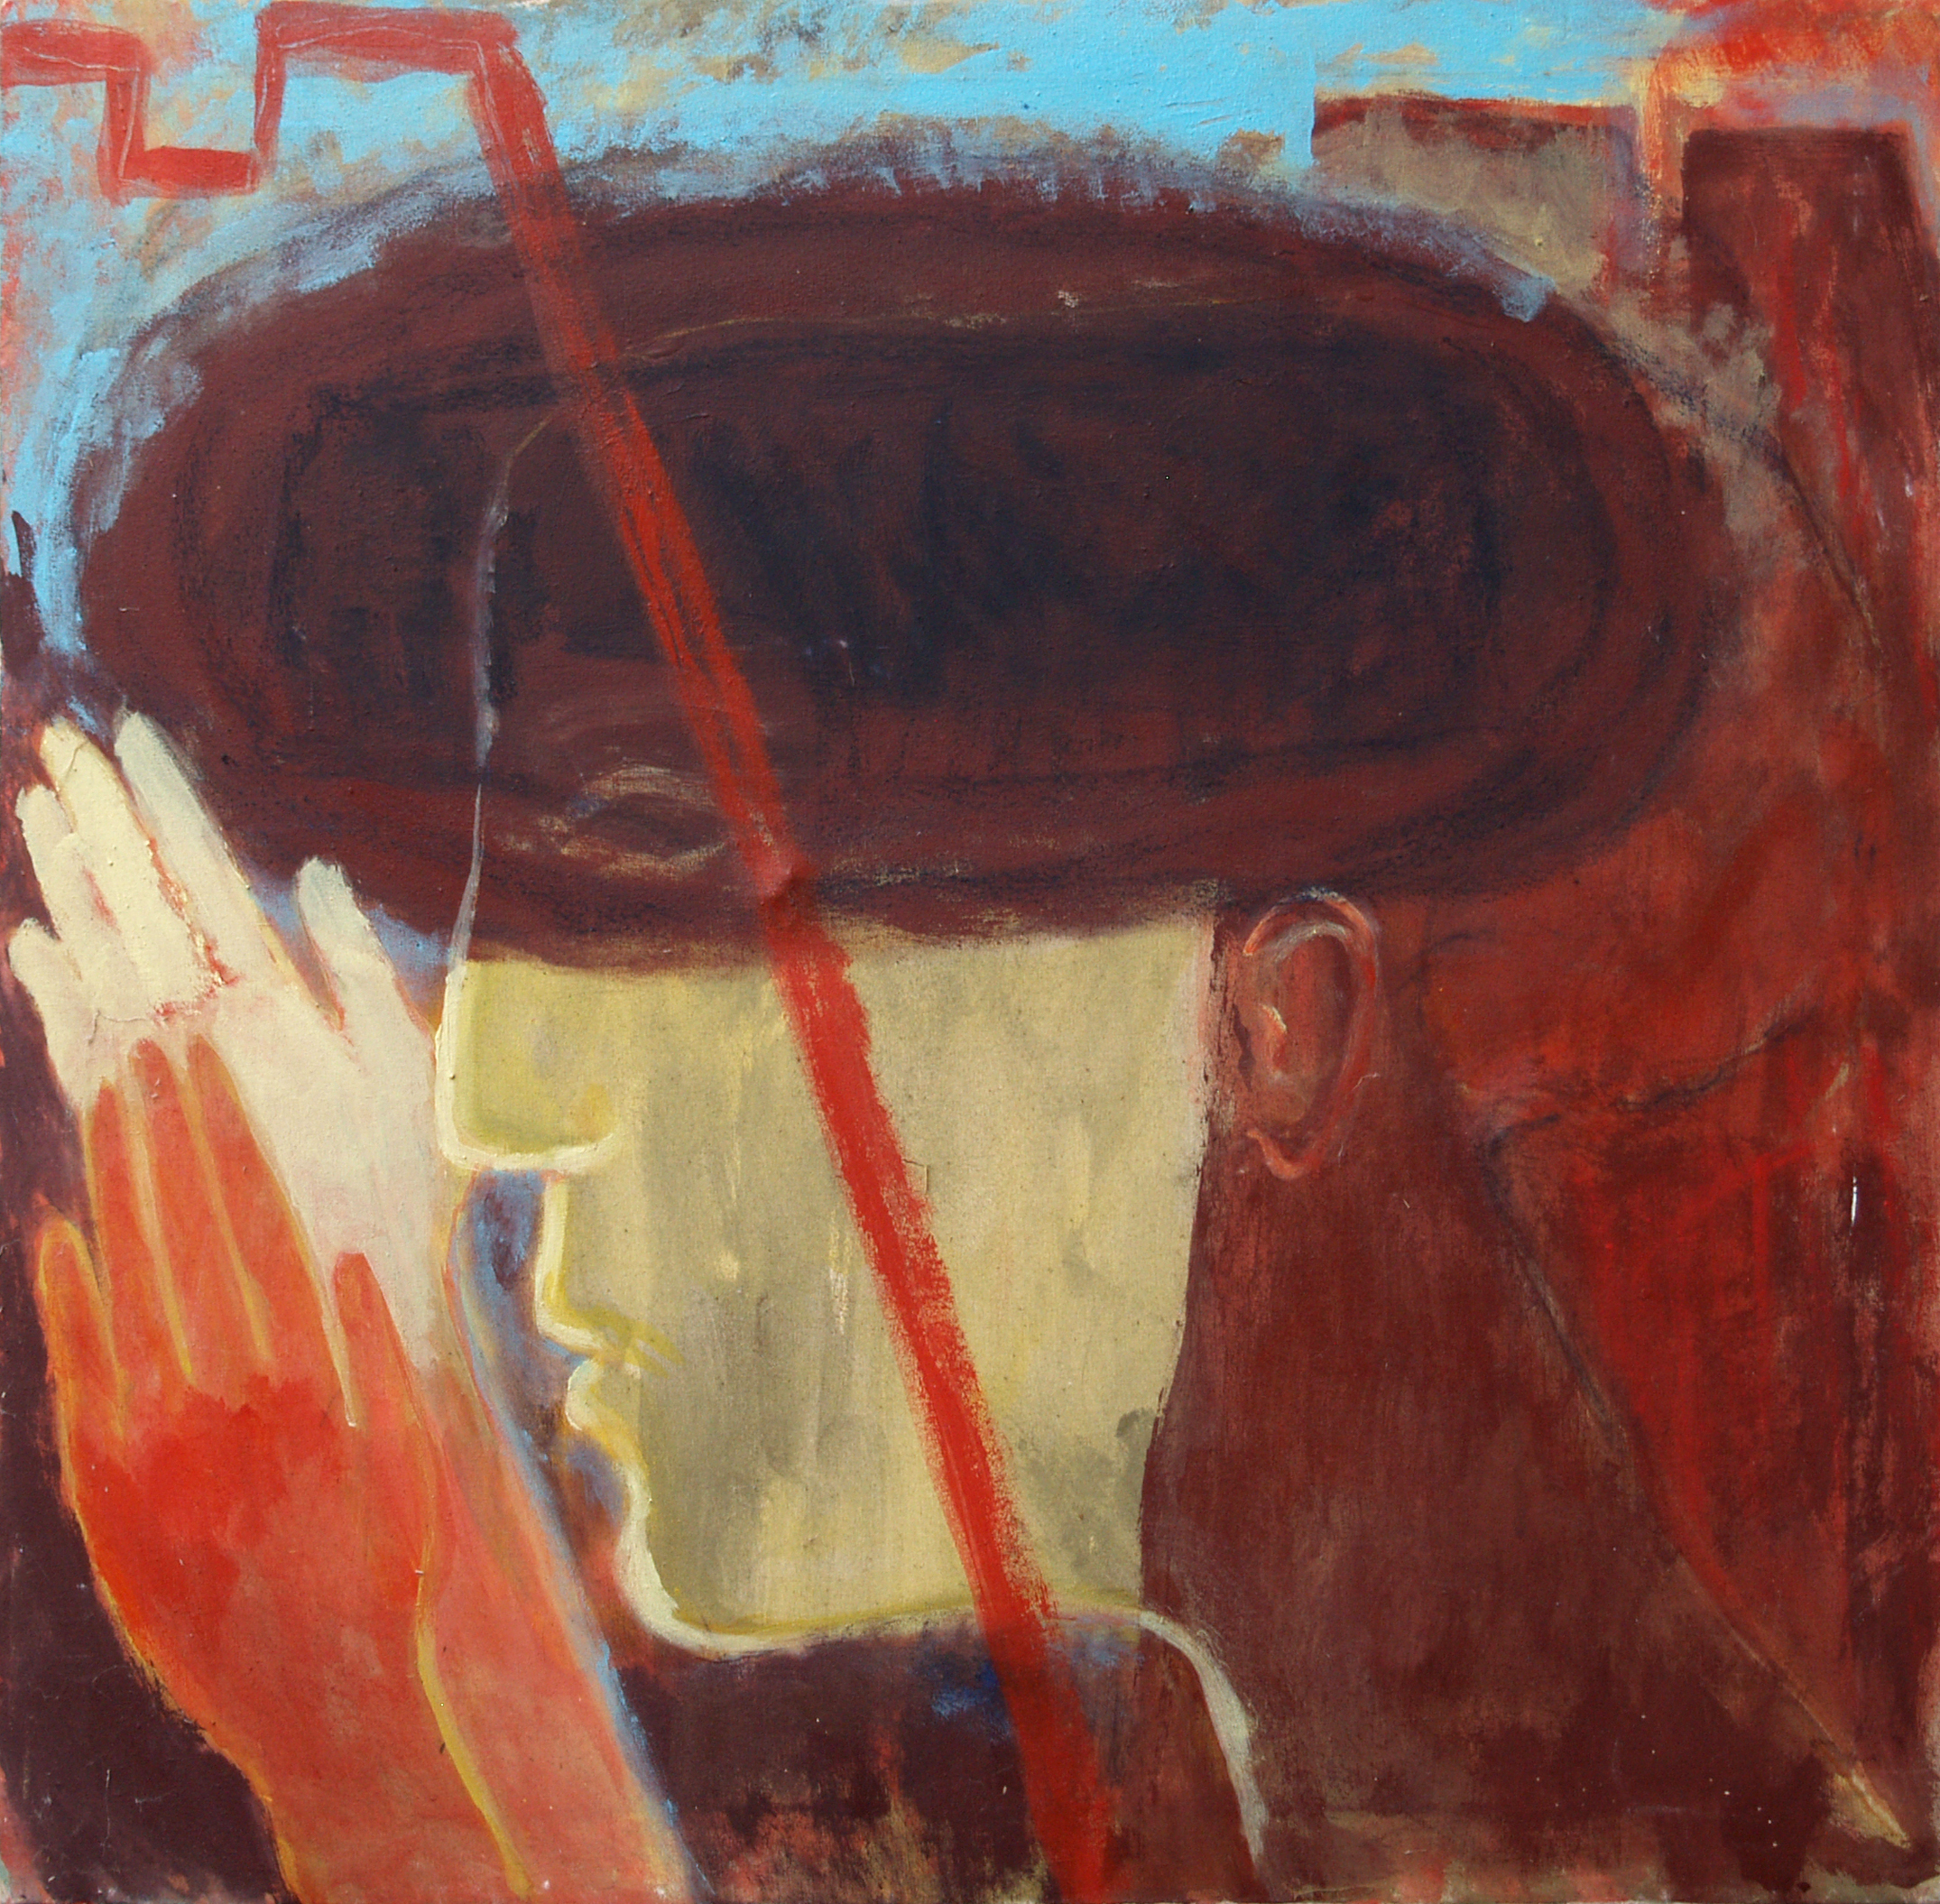 'Headache' - 1993 - Acrylic, Mixed Media - on Canvas - 71.5 X 71.5 cm.